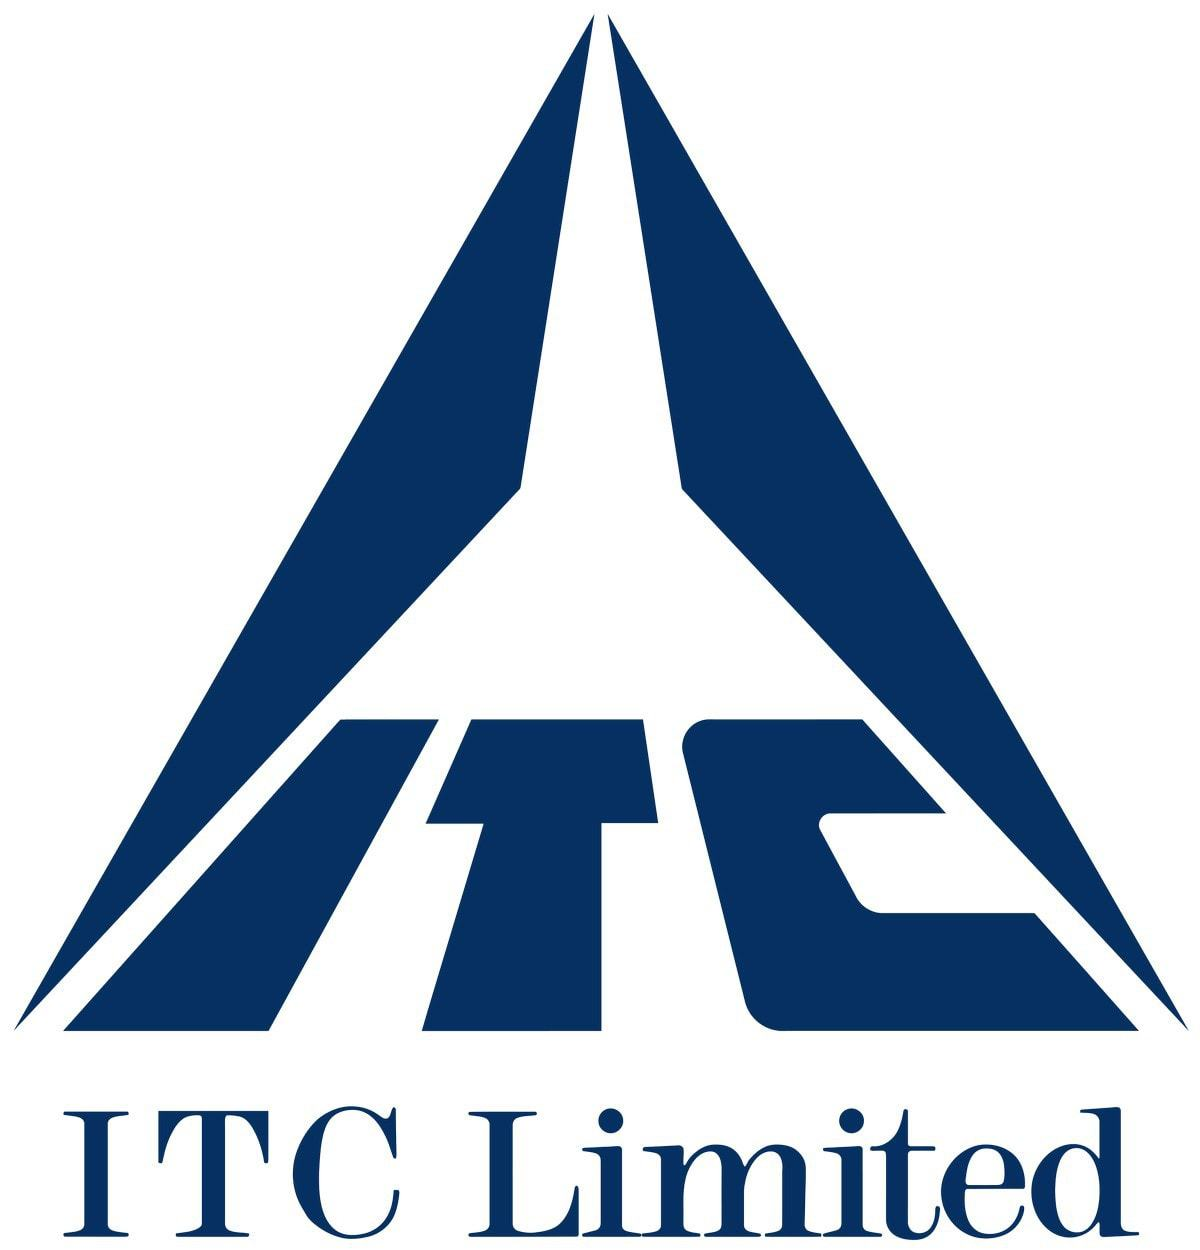 Marketing Mix Of ITC